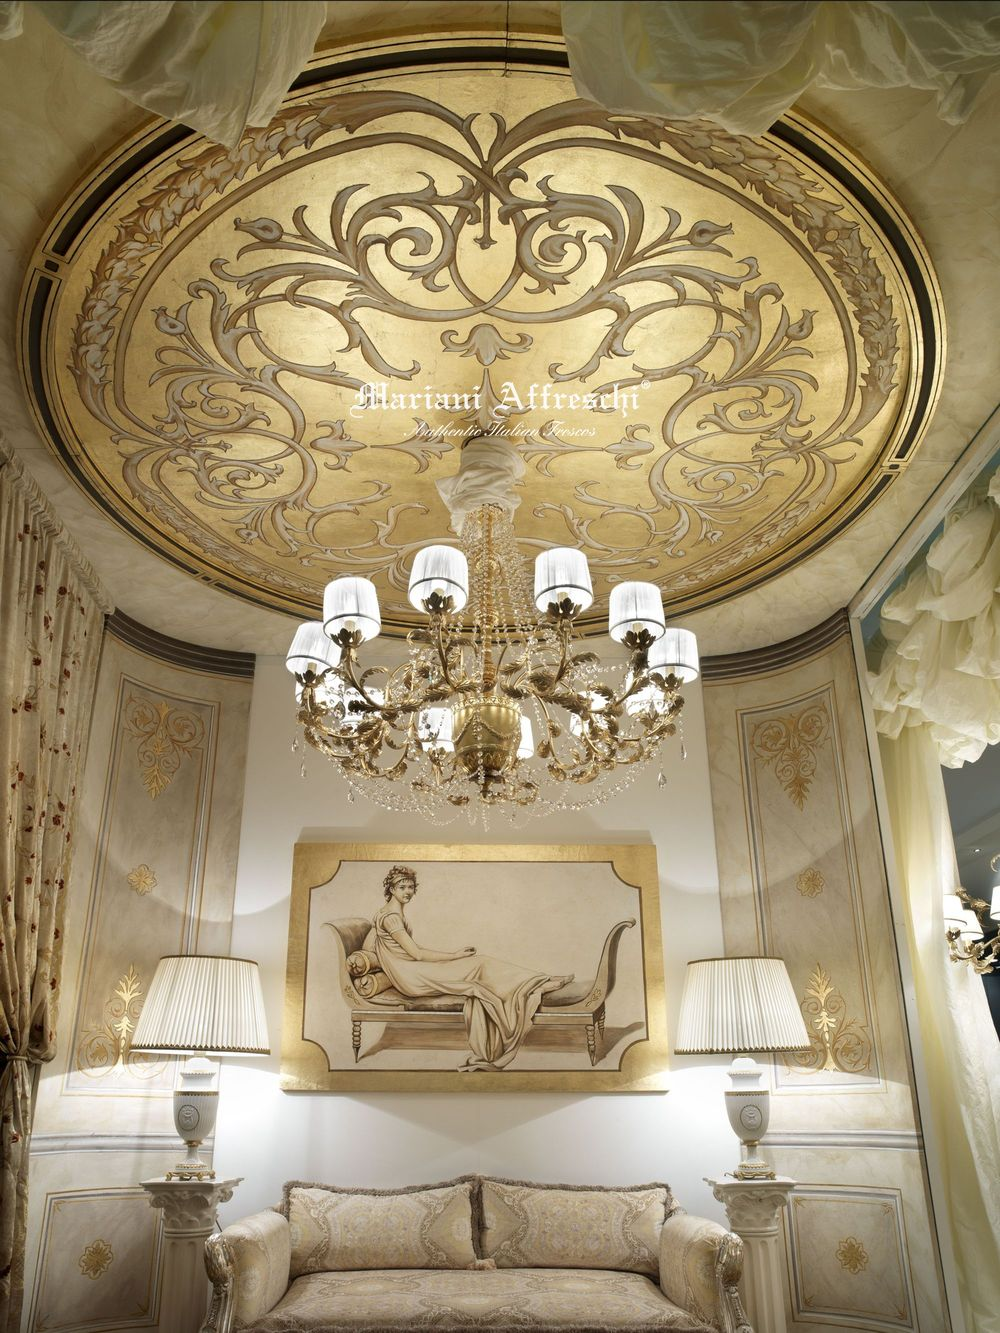 italian frescos - blog | ceiling frescoes and decorations - Soffitto A Volta Affrescato